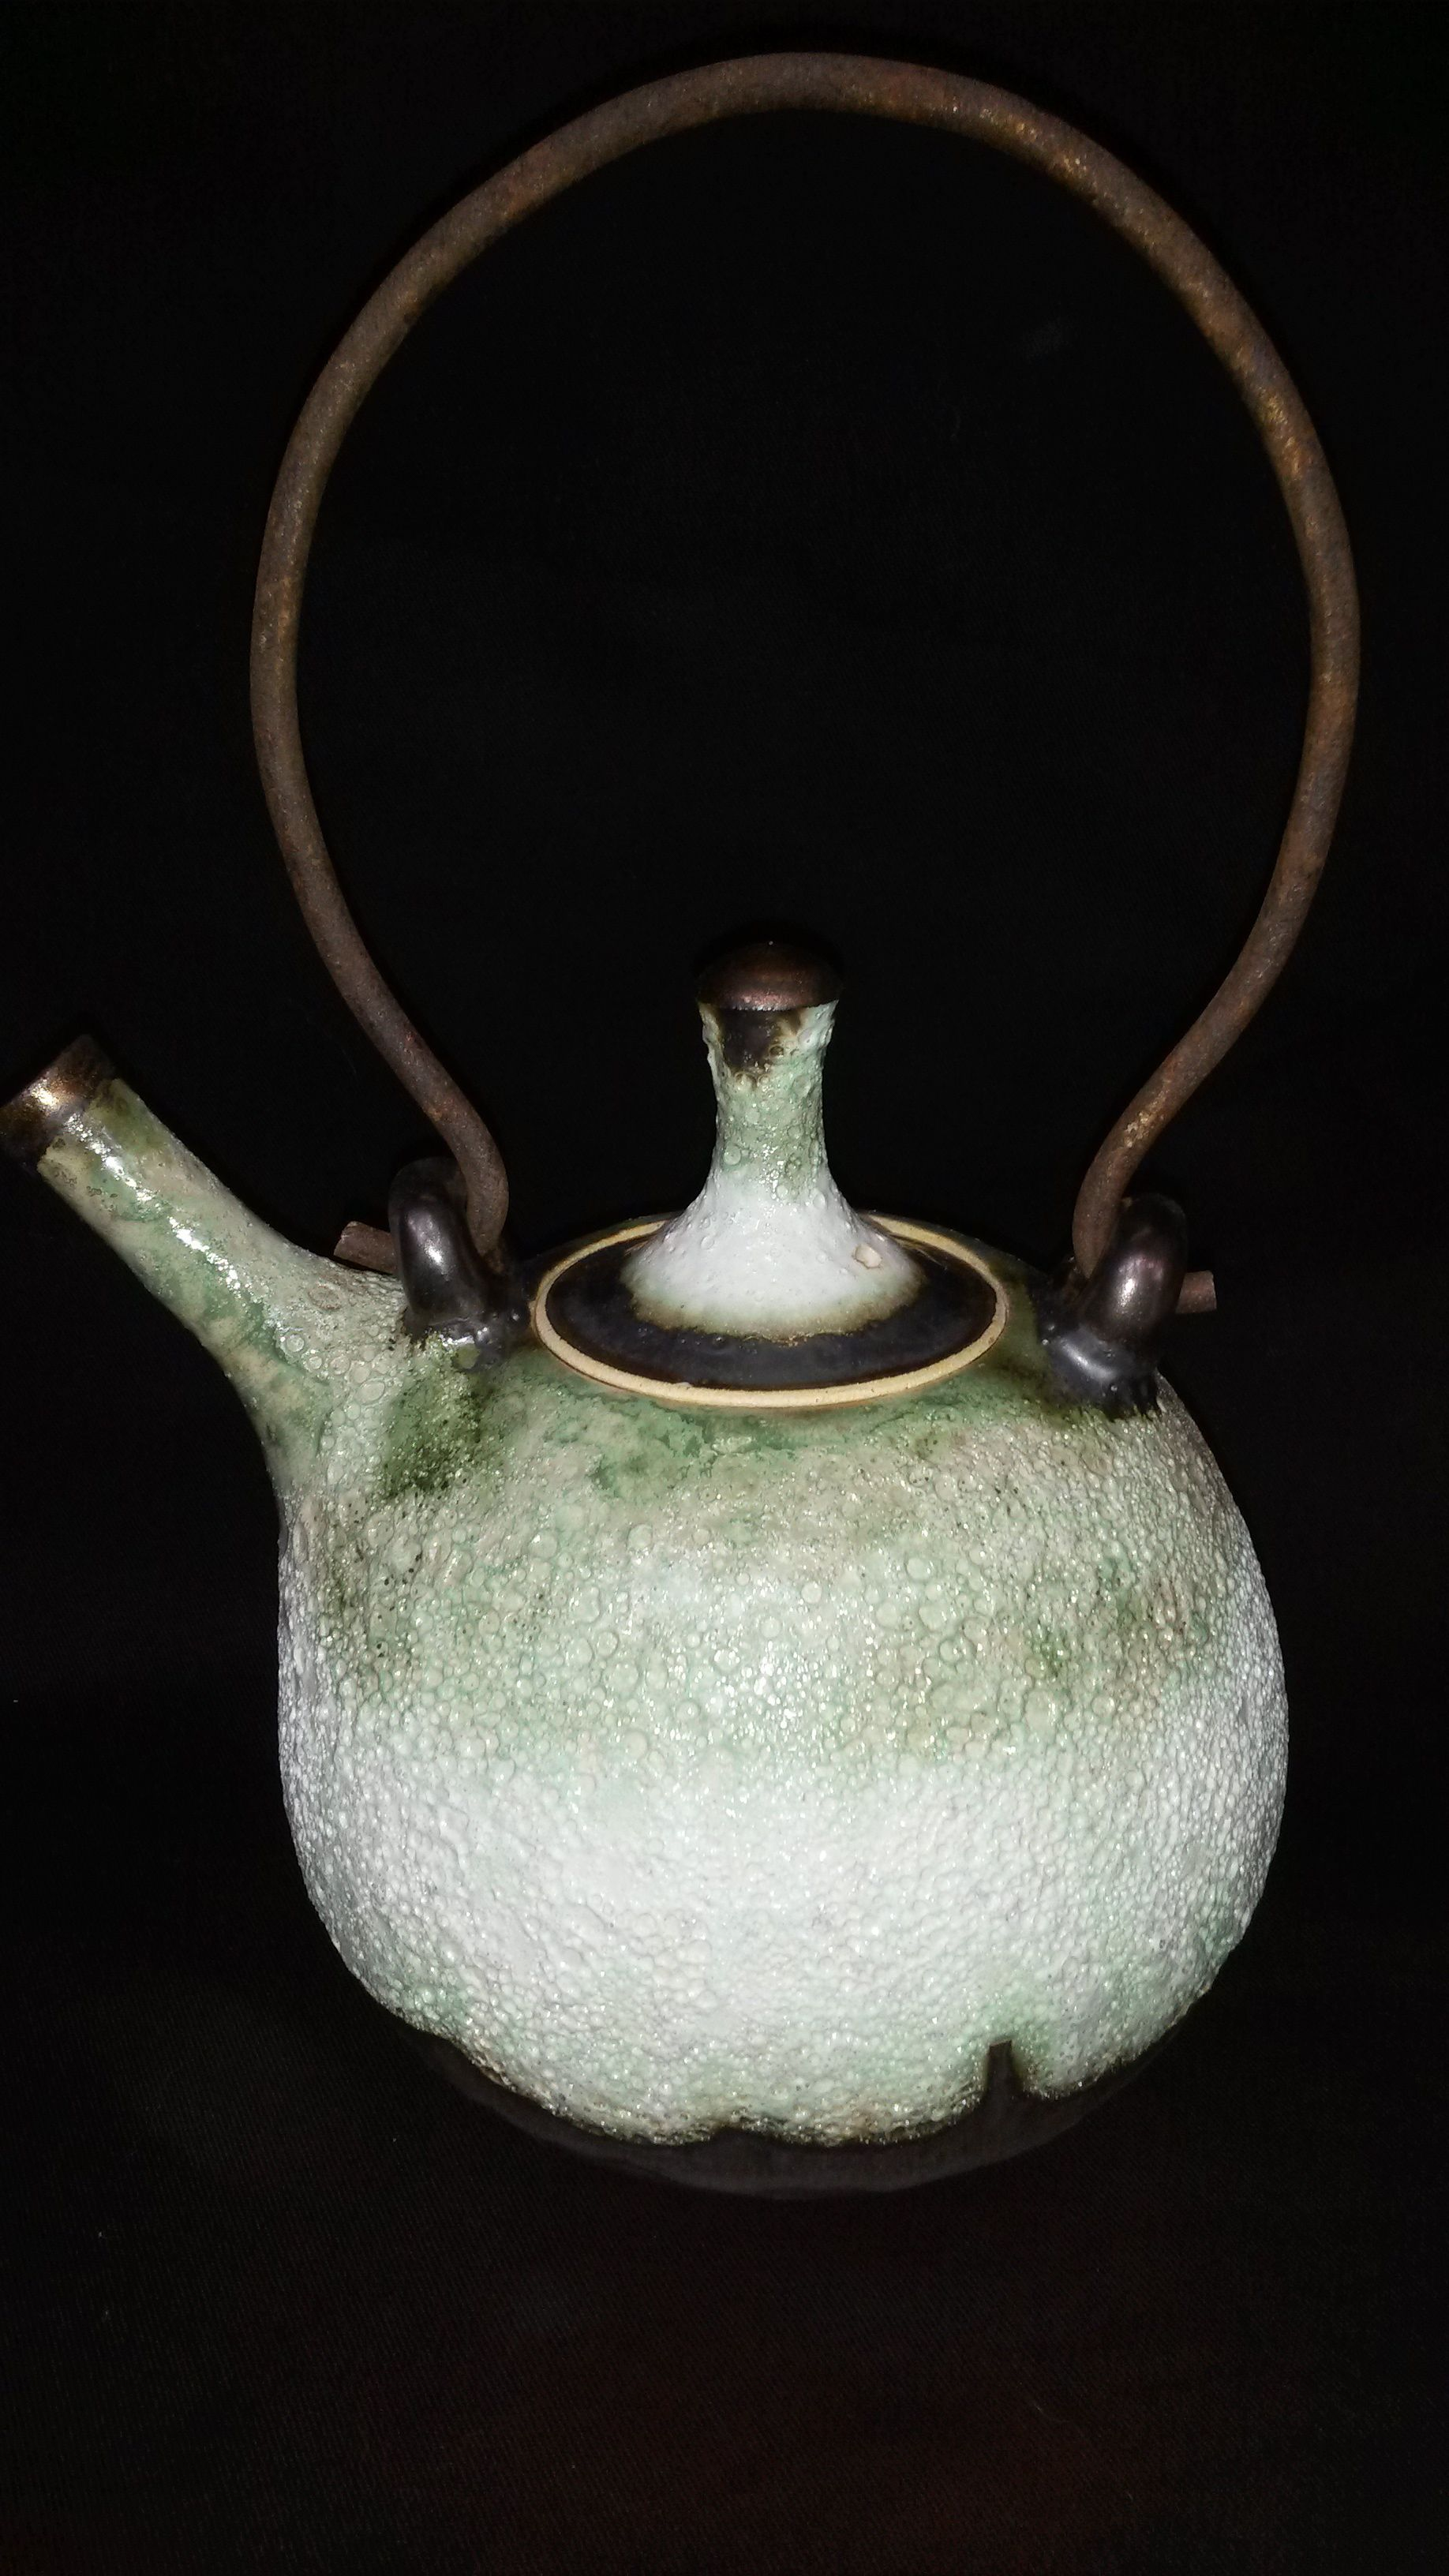 Teapot by Lissa Claassens. Volcanic glaze with copper